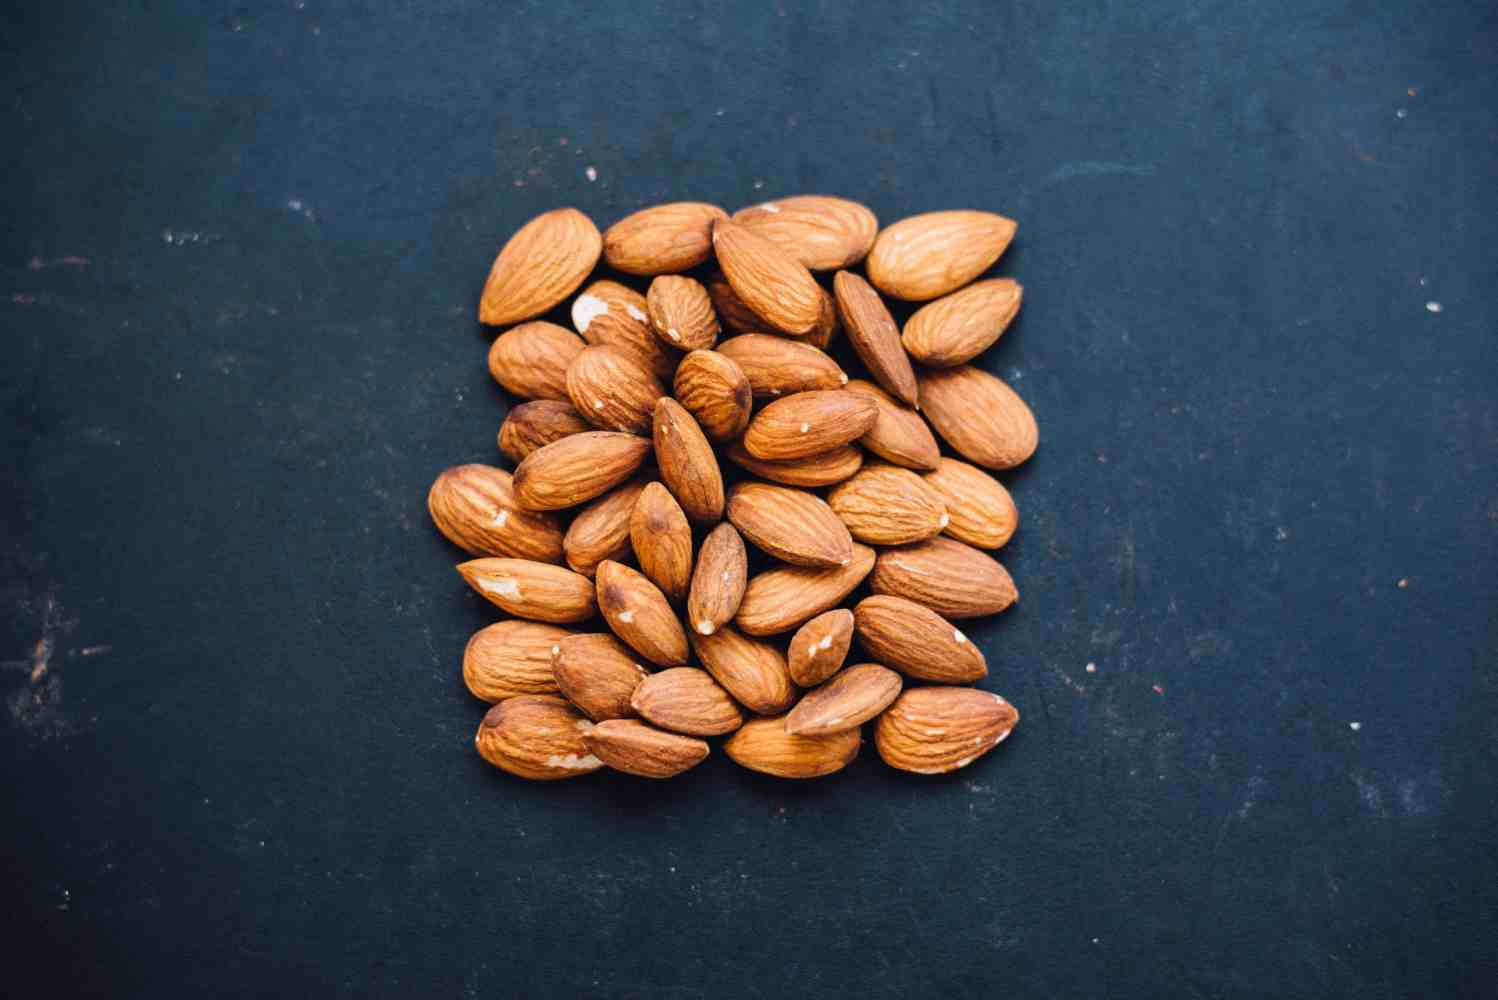 Pregnant women should eat lots of nuts